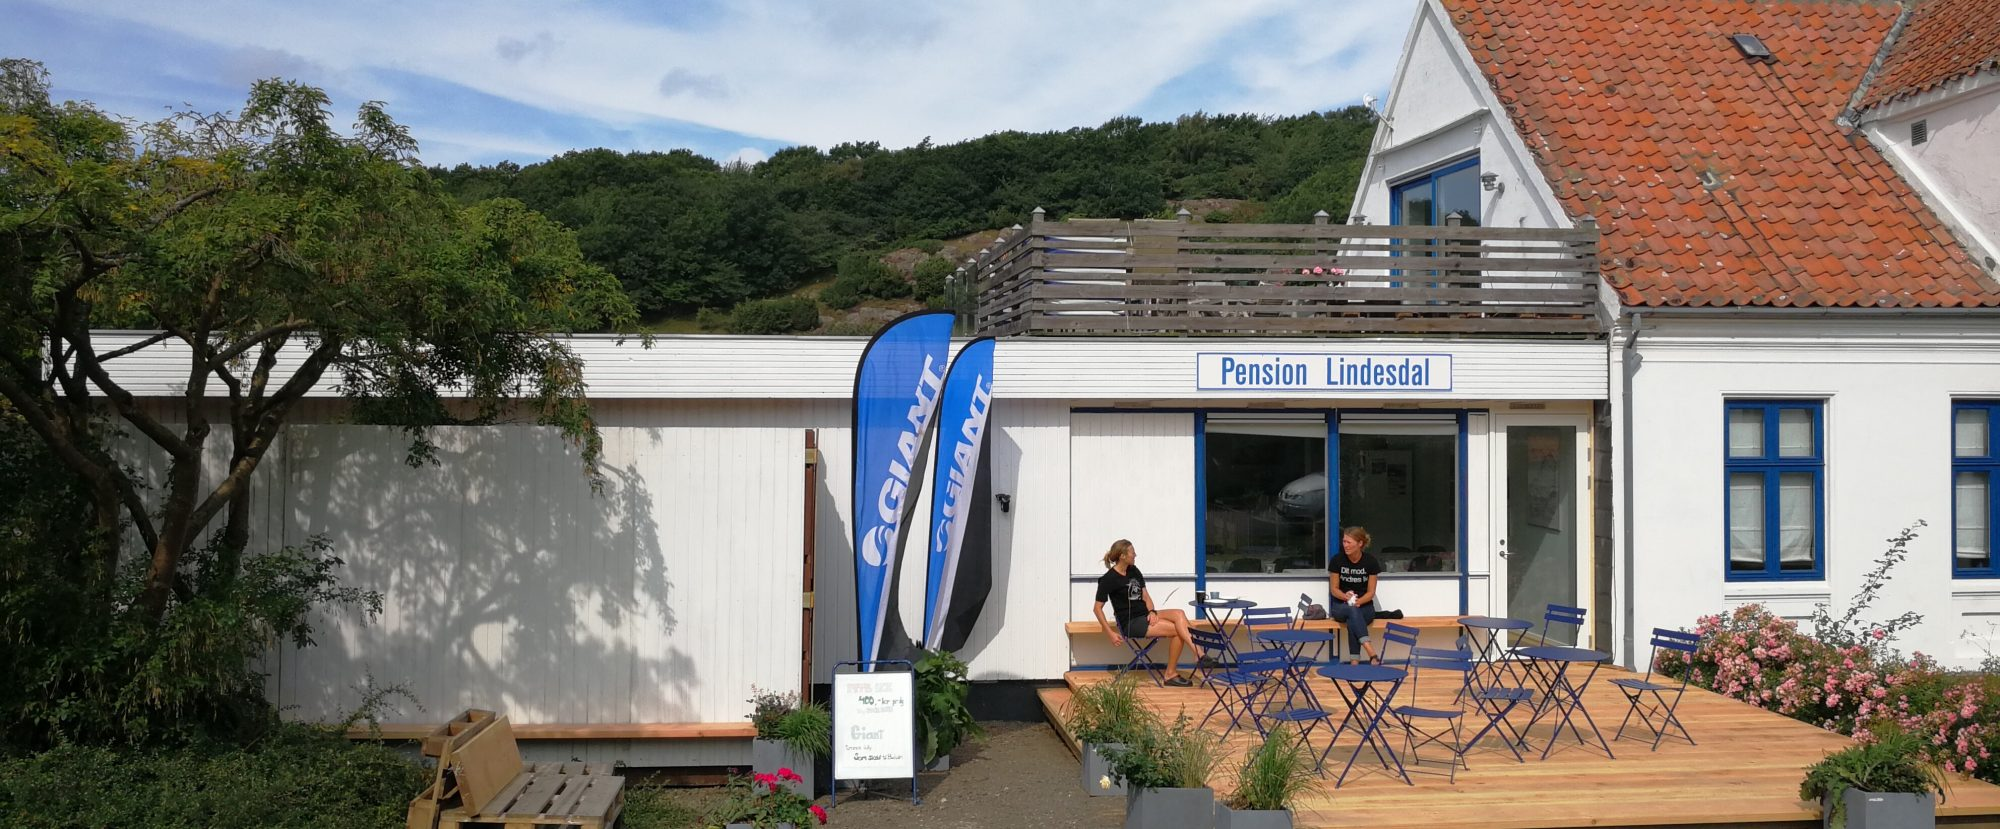 Pension Lindesdal